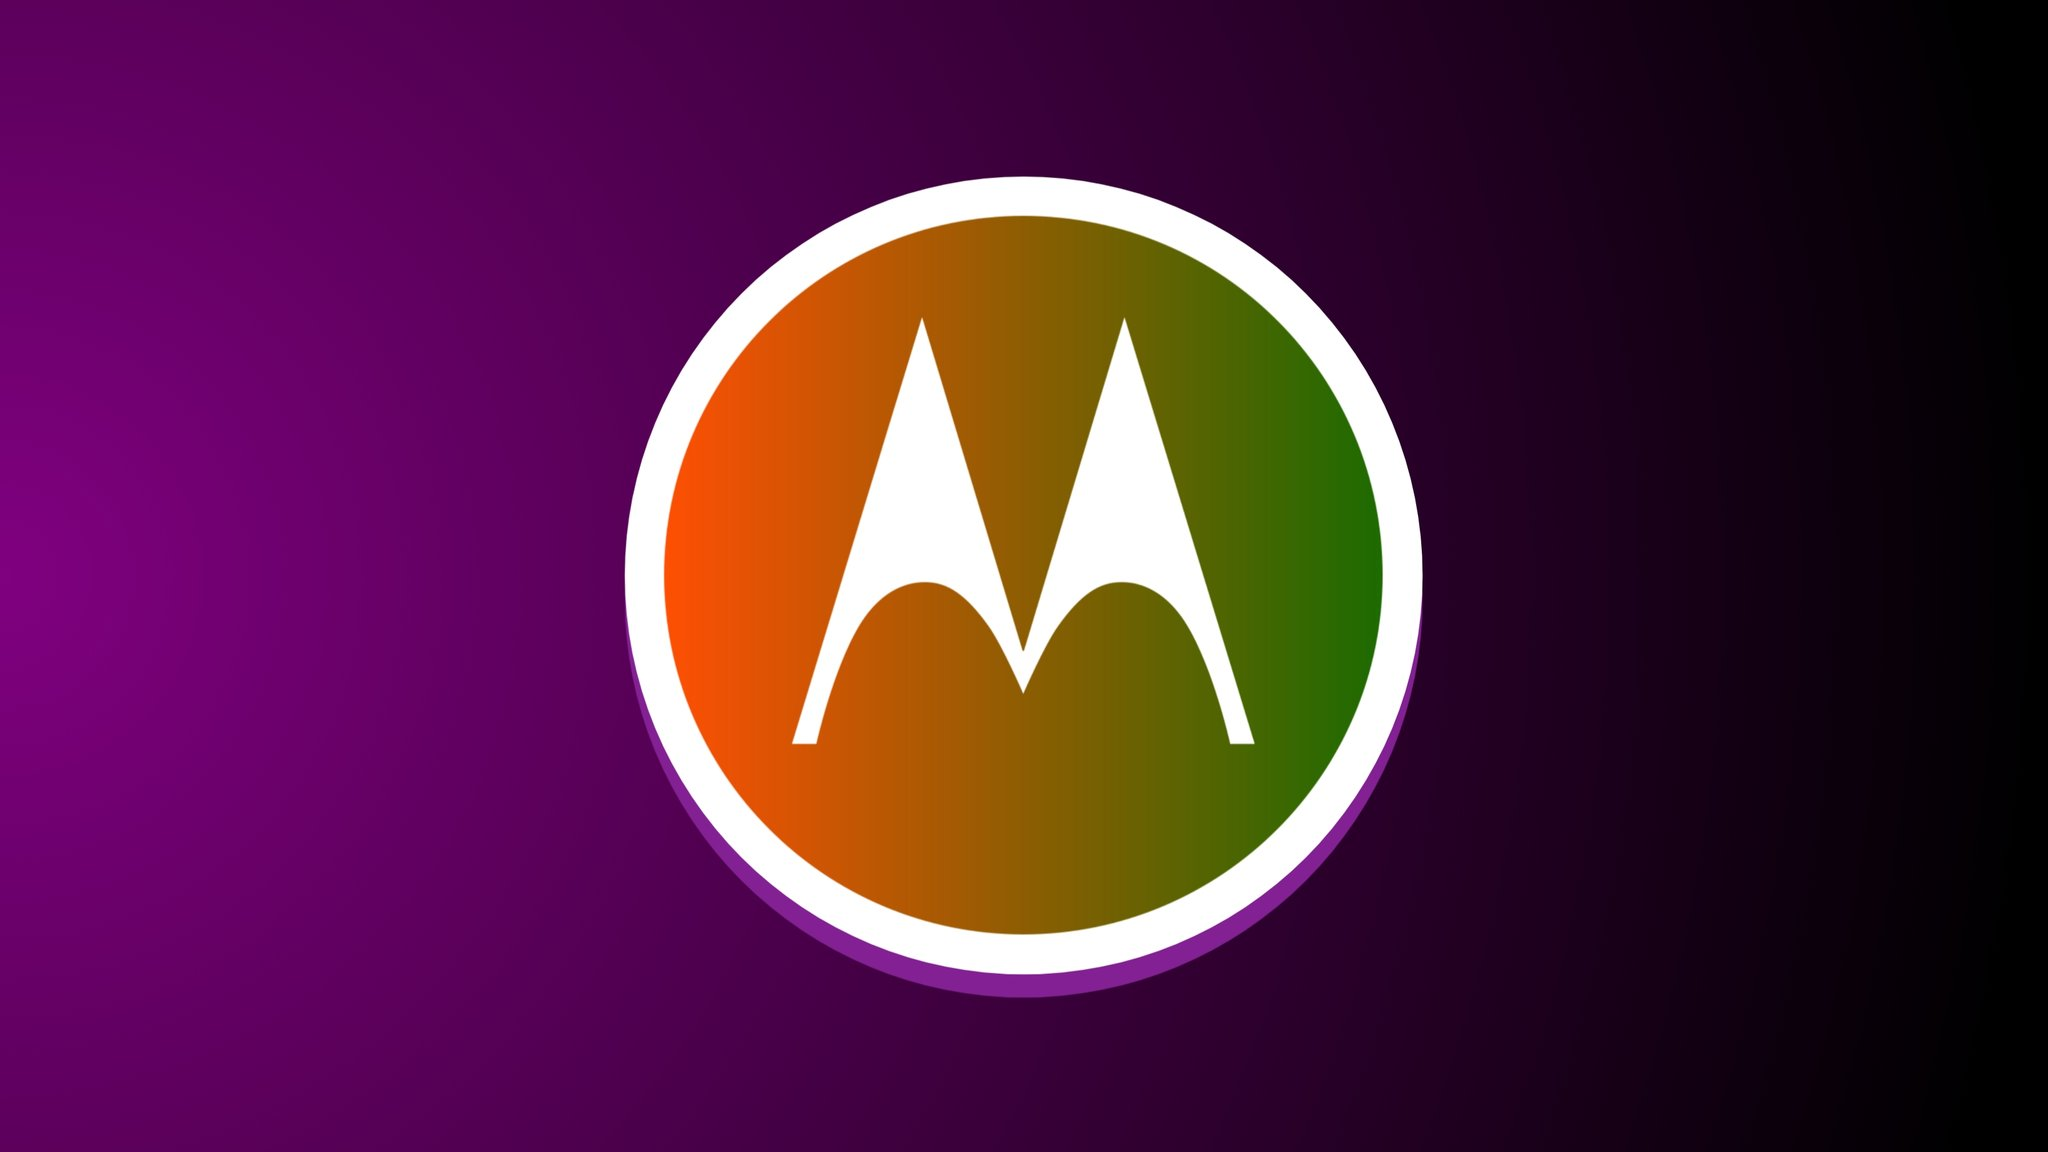 E1CV-Motorola Is Reportedly Working On A Smartphone That Can Charge Wirelessly Over The Air